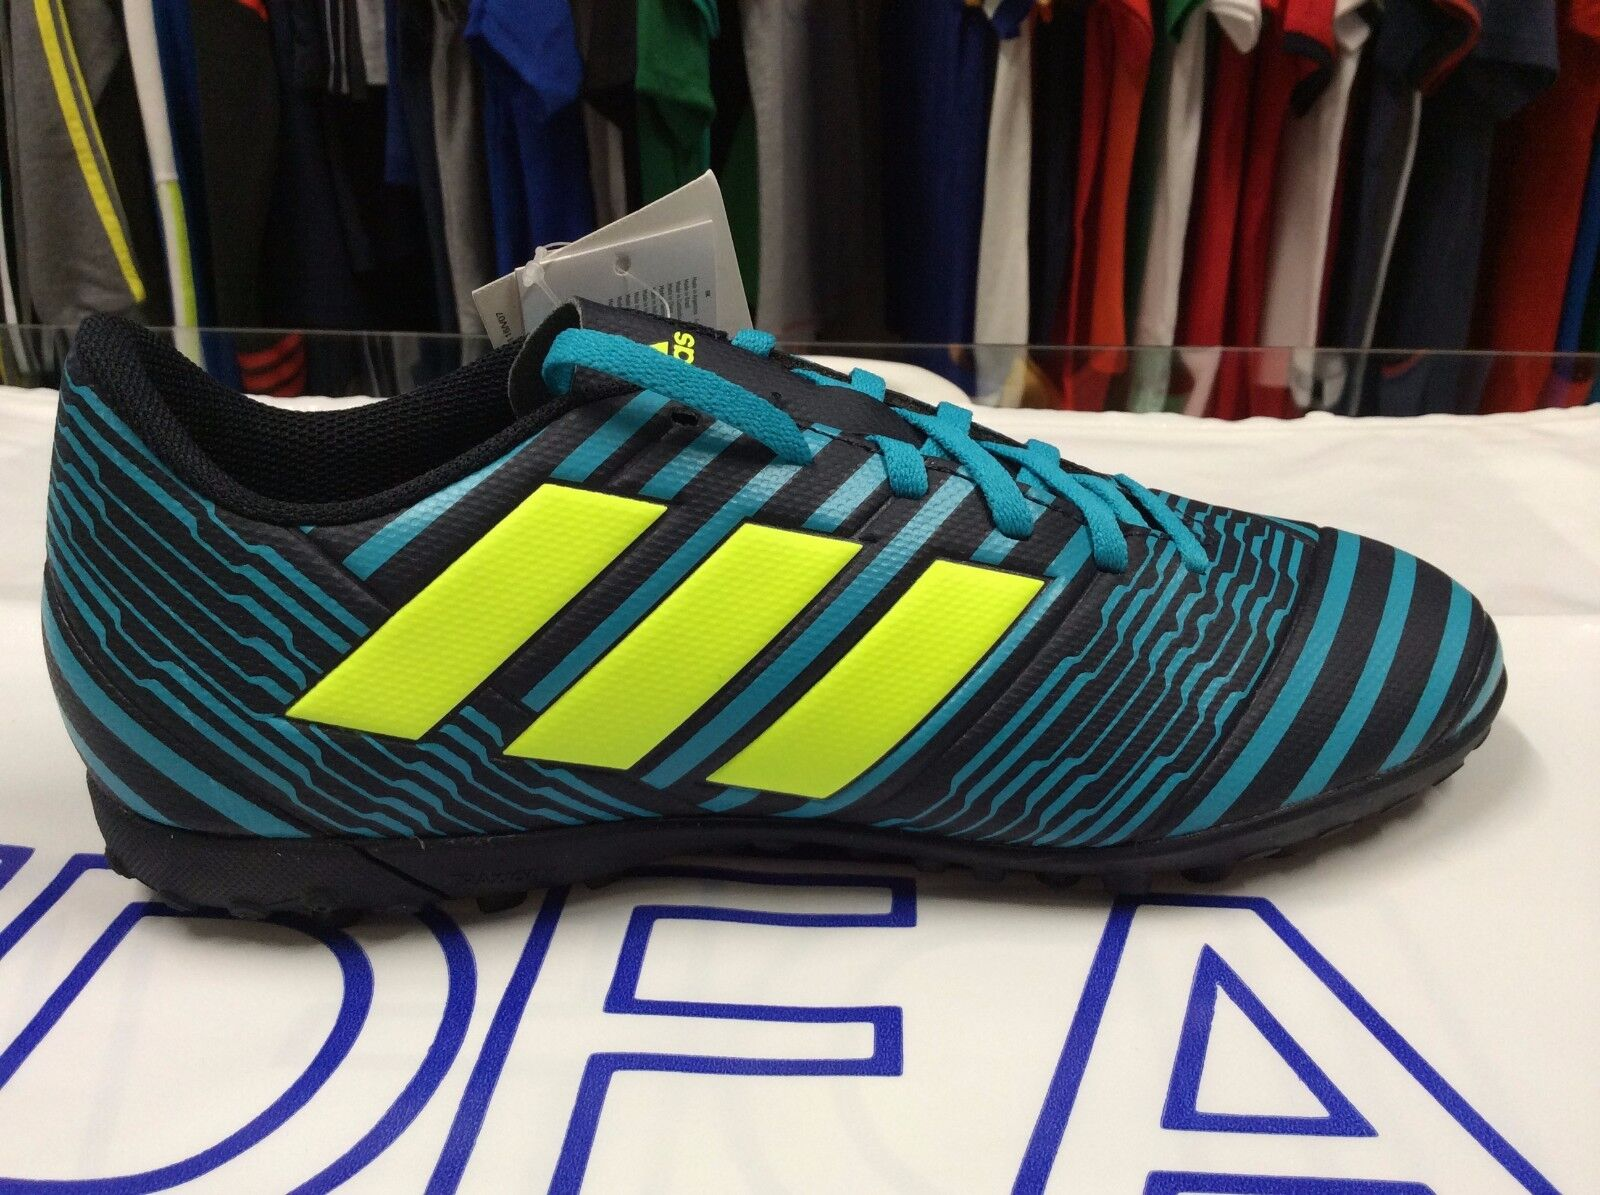 MEN'S SHOE SOCCER ADIDAS NEMEZIZ 17.4 TF art.B82477 outdoor